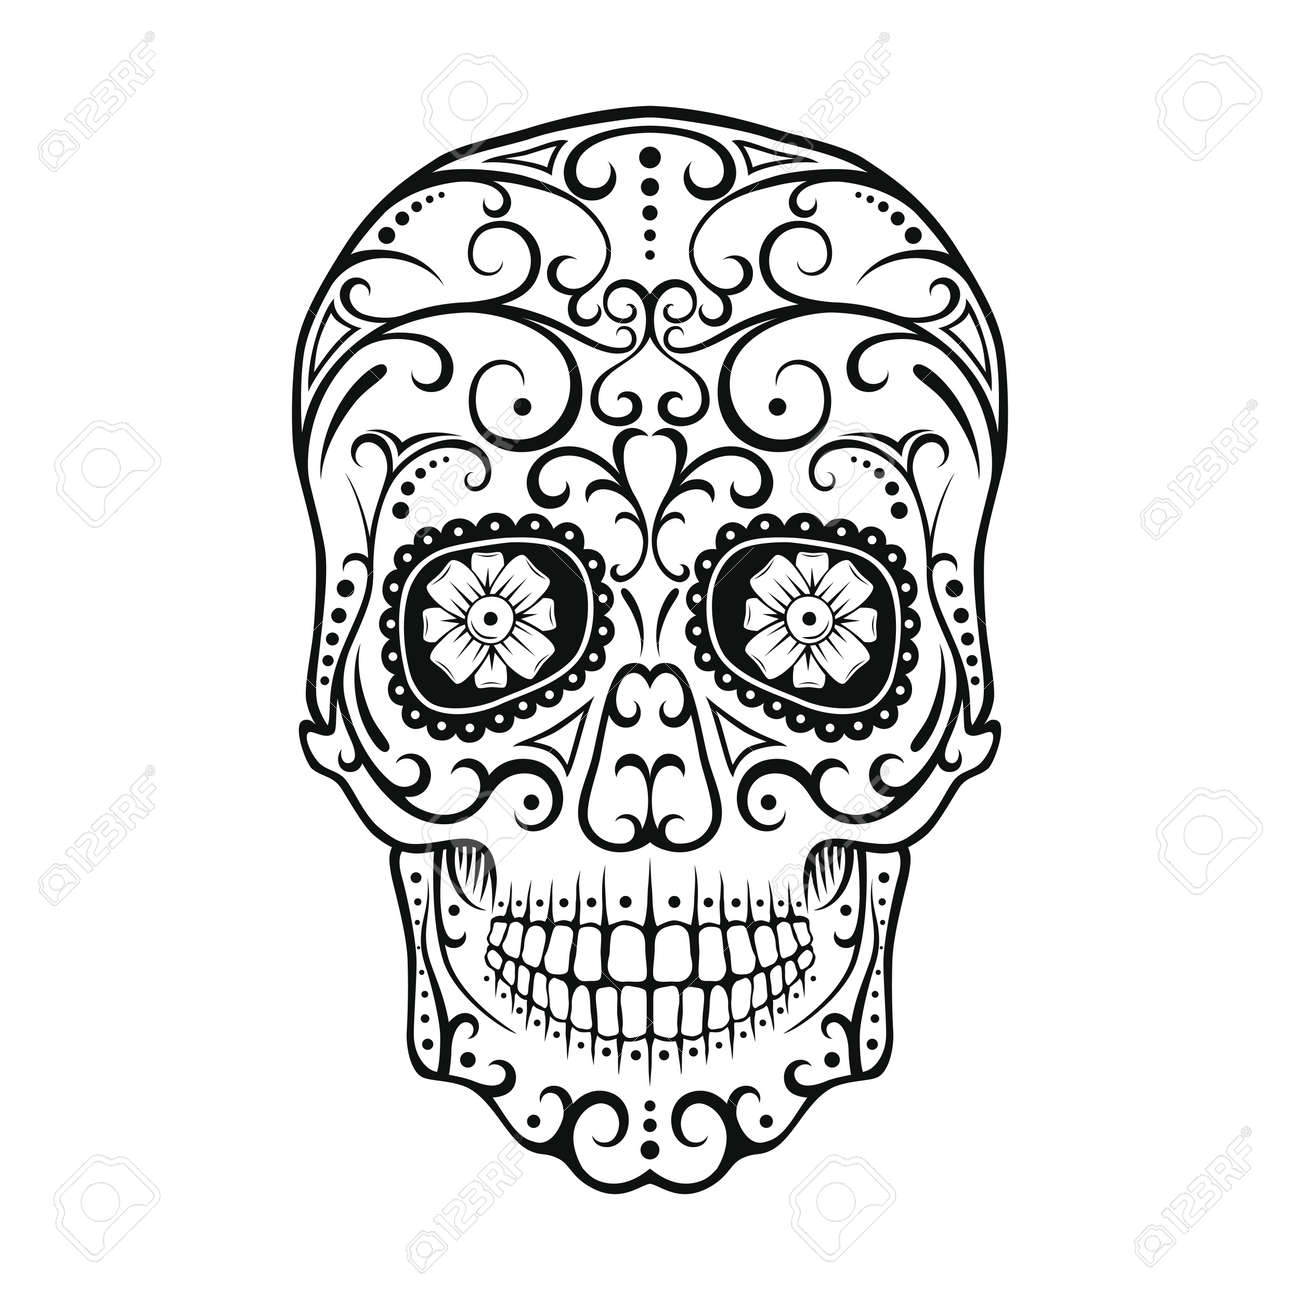 black and white tattoo skull day of the dead candy skull mexican rh 123rf com day of the dead vector graphics day of the dead skull vector